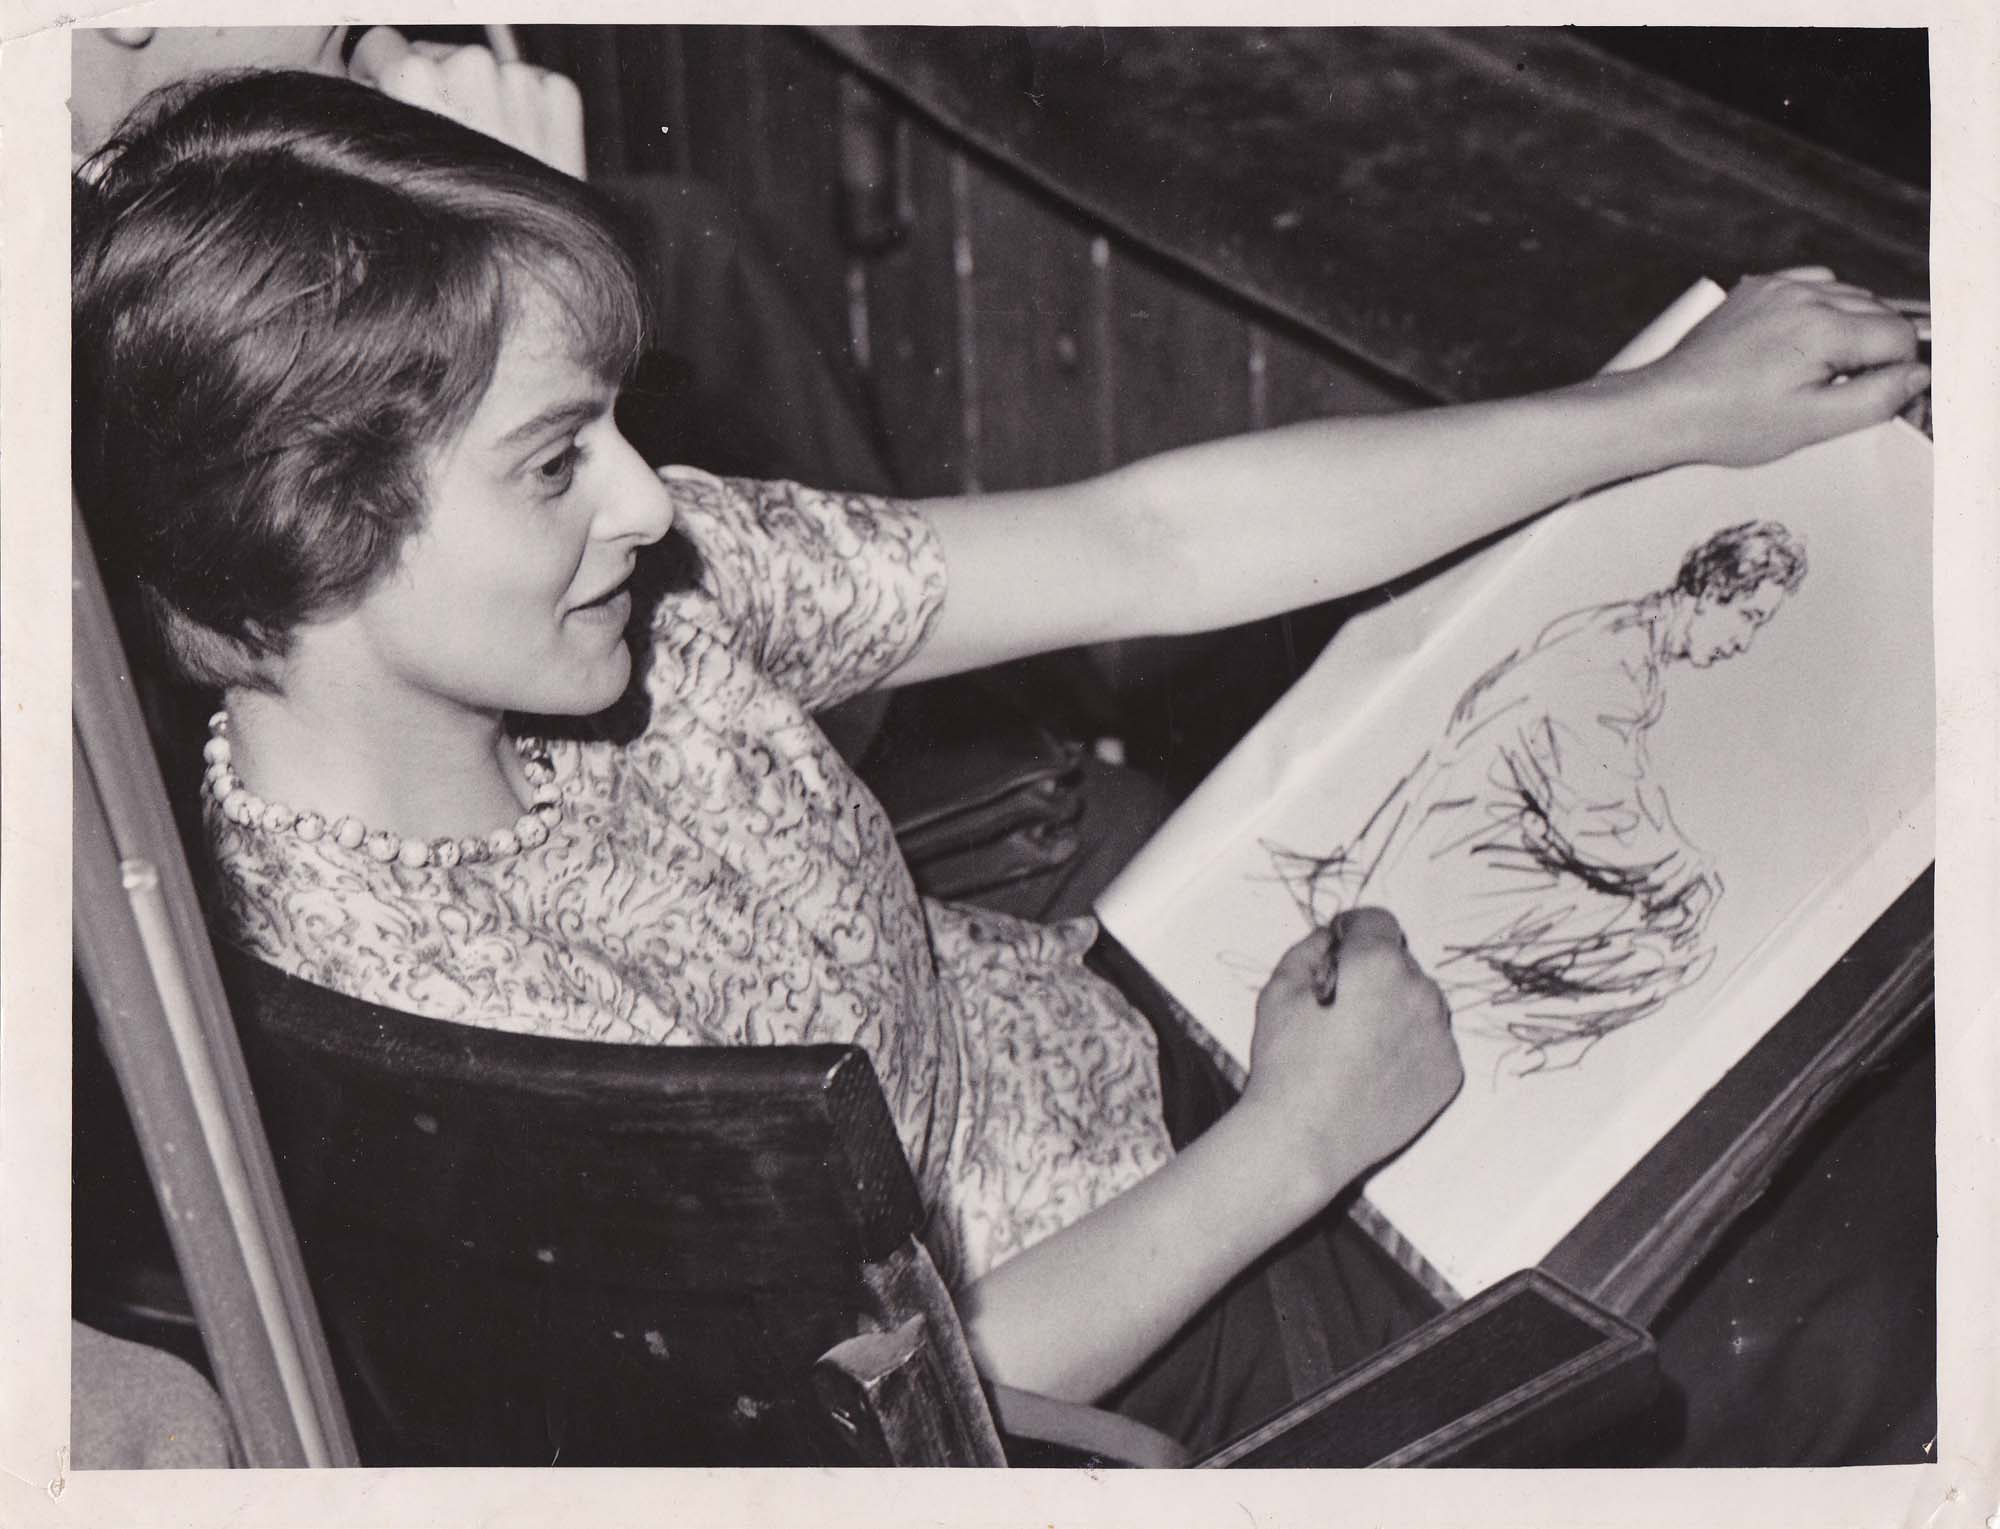 a photo of a woman reclining and sketching a man